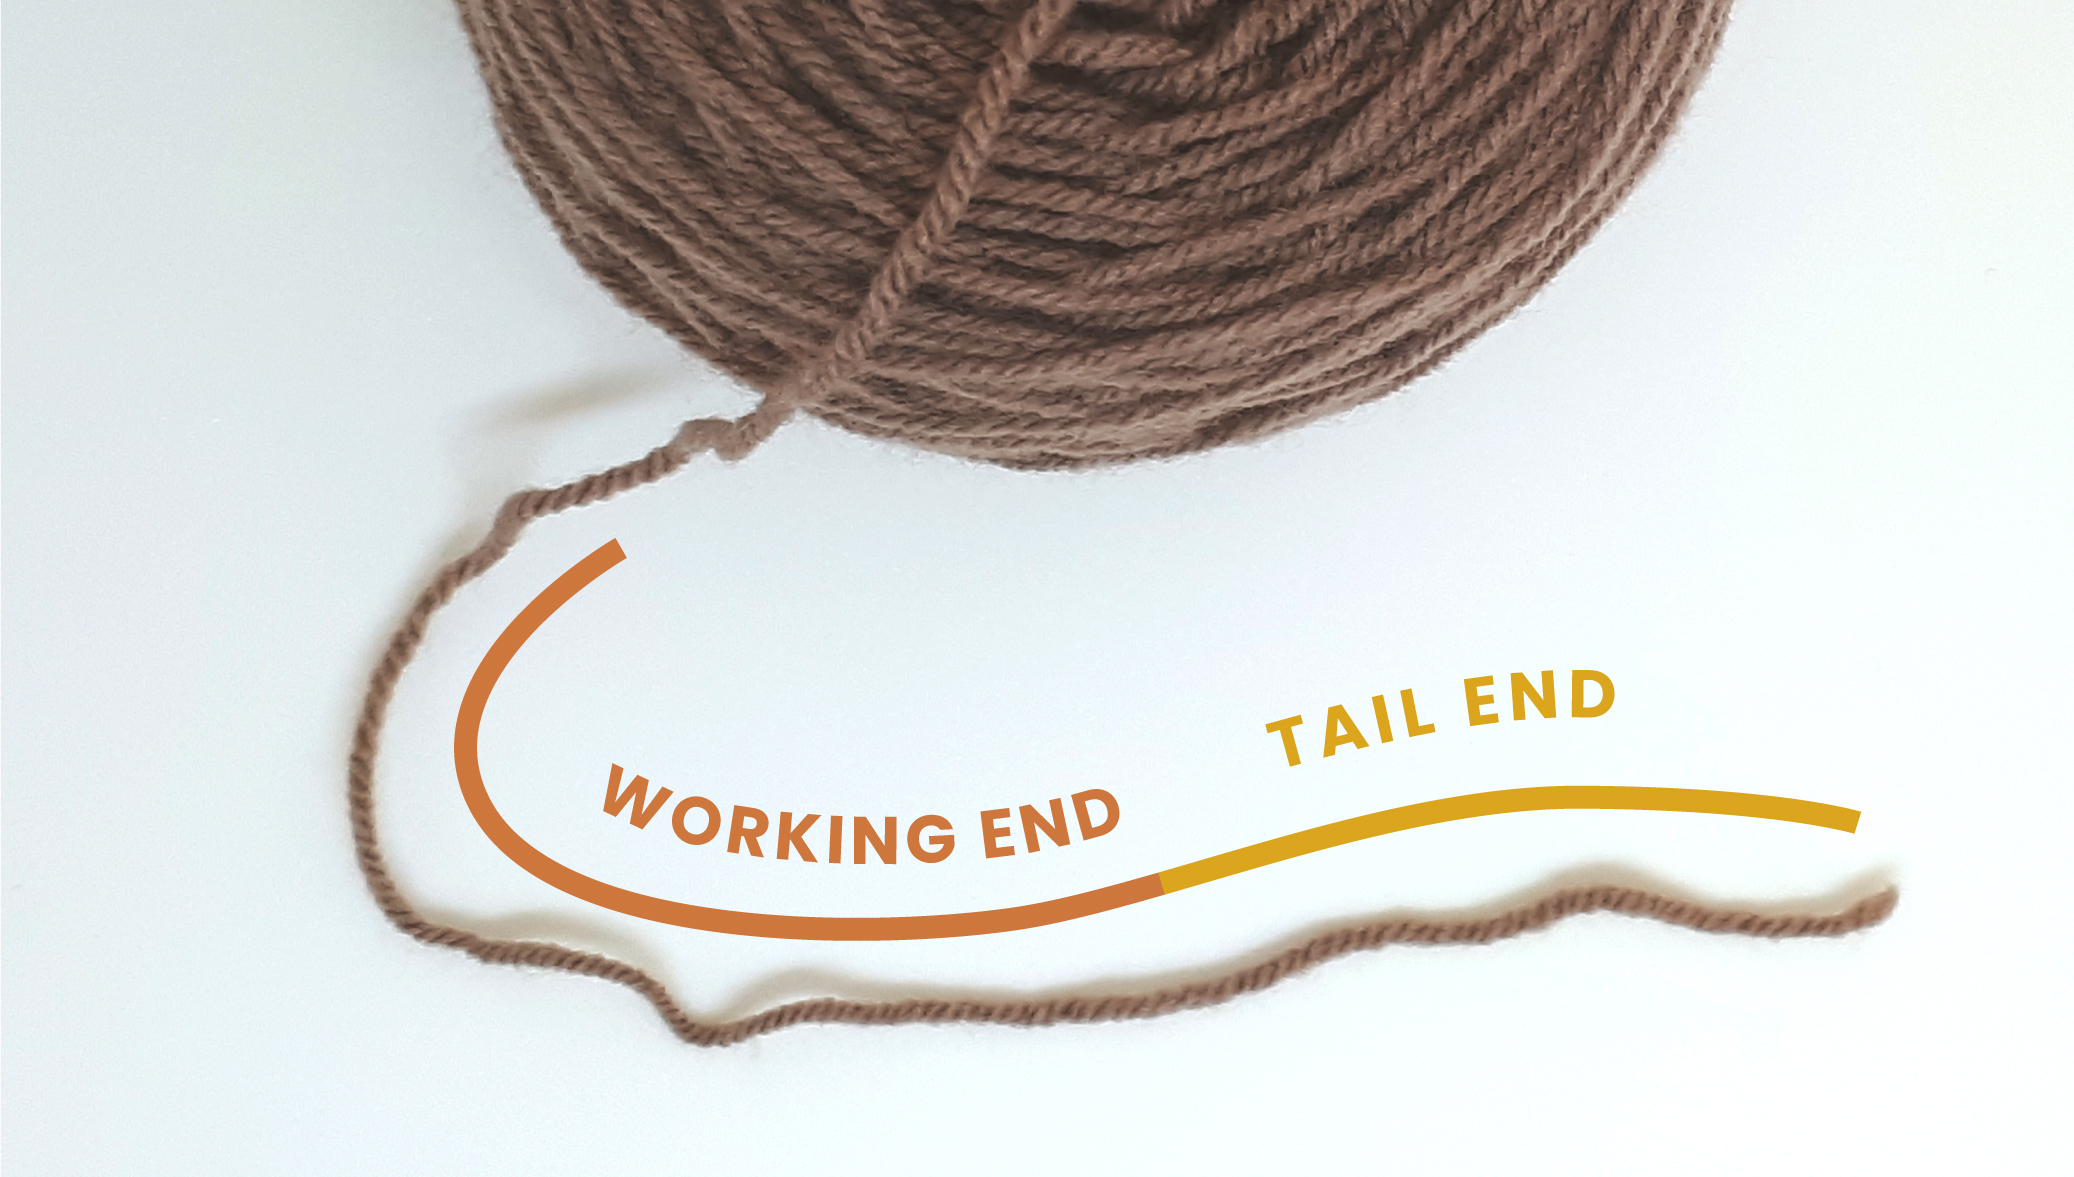 Top view of a brown cake of yarn that demonstrate the working end and the tail end of a loose end